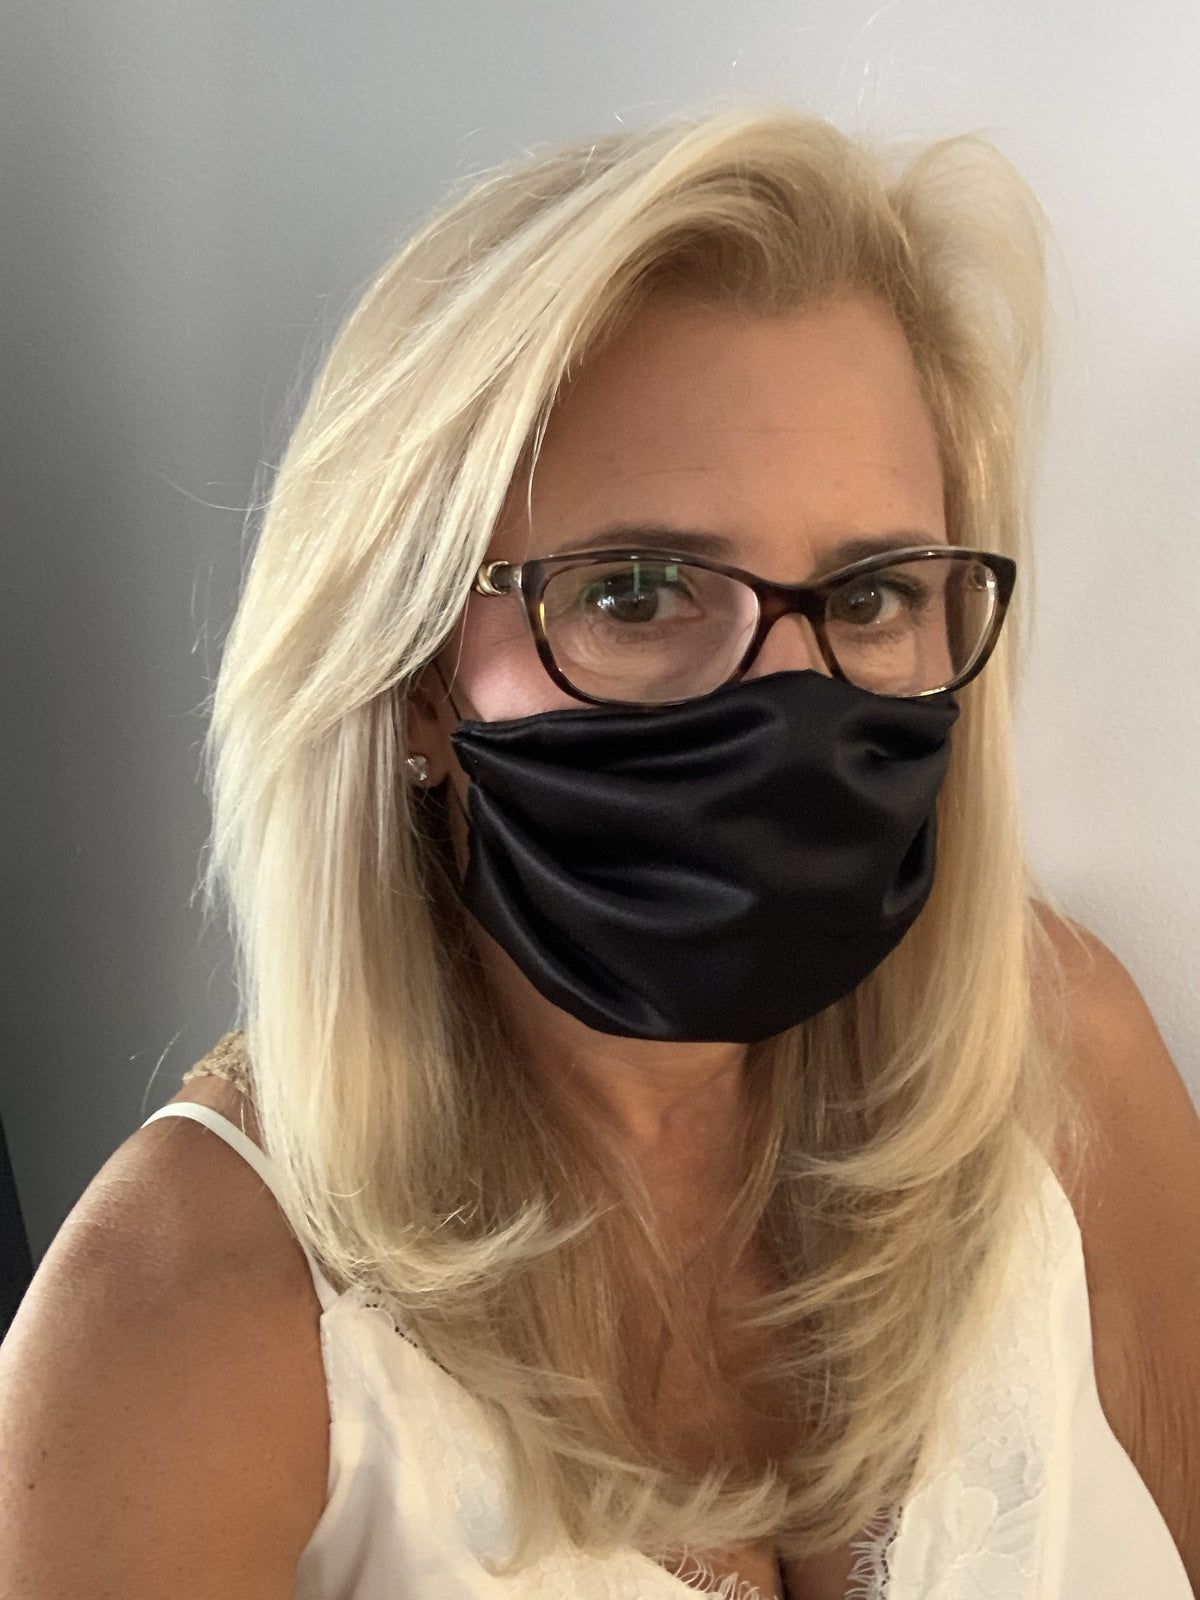 Stacy Bradley Design Face Mask Satin Black equestrian team apparel online tack store mobile tack store custom farm apparel custom show stable clothing equestrian lifestyle horse show clothing riding clothes horses equestrian tack store